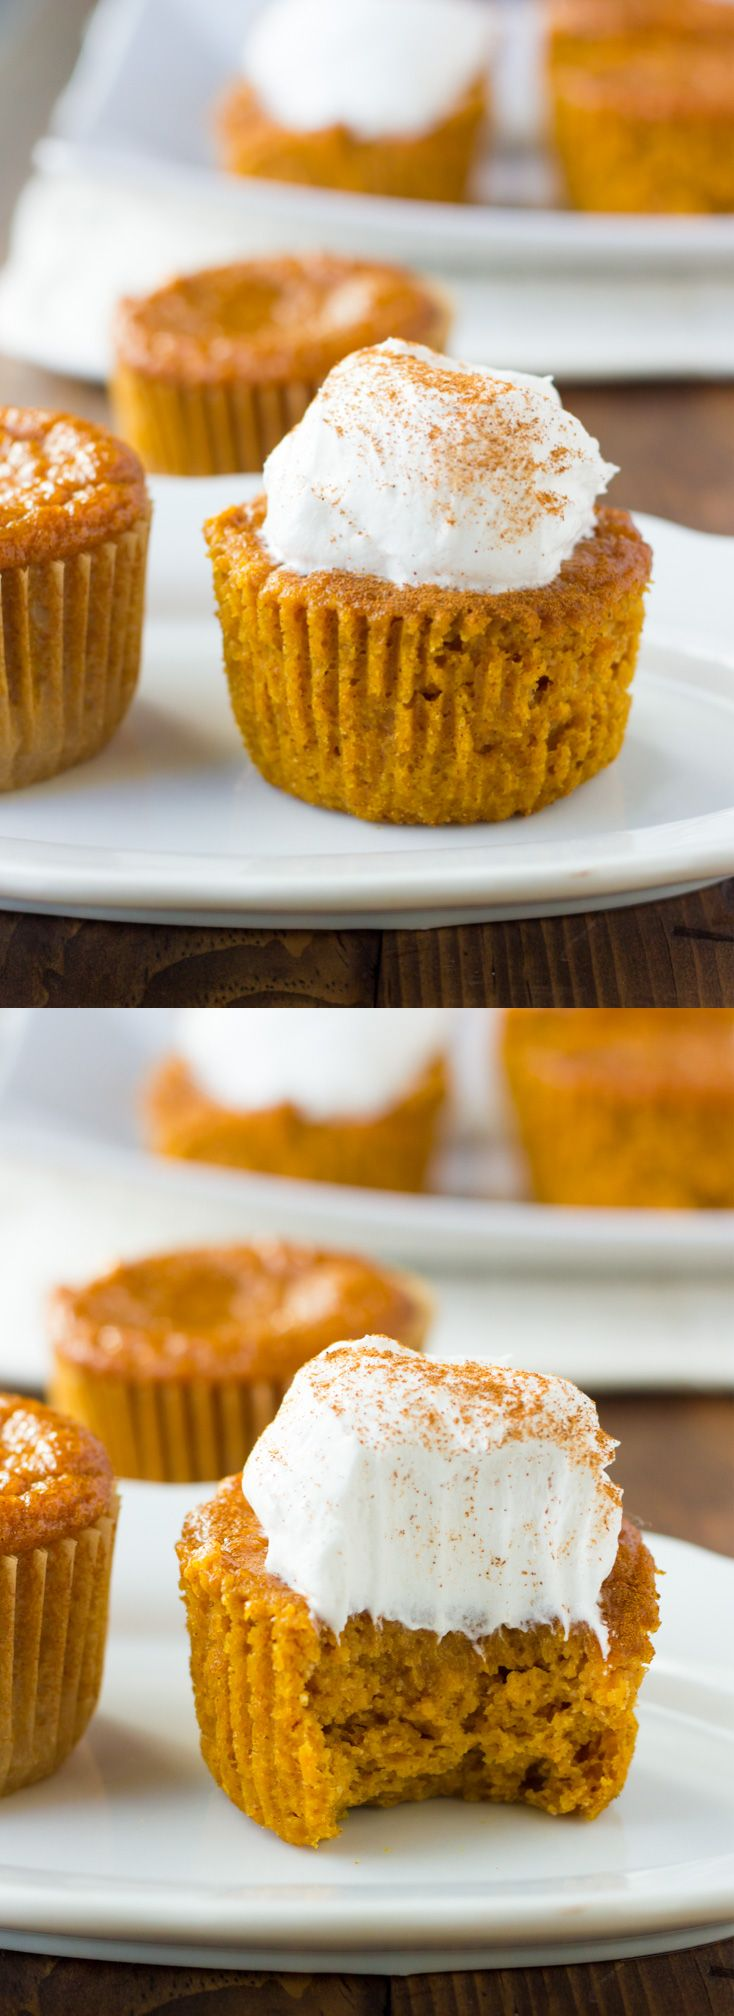 Gluten-Free Crustless Pumpkin Pie Cupcakes! So easy to make and perfect for Thanksgiving. (Dairy-Free)